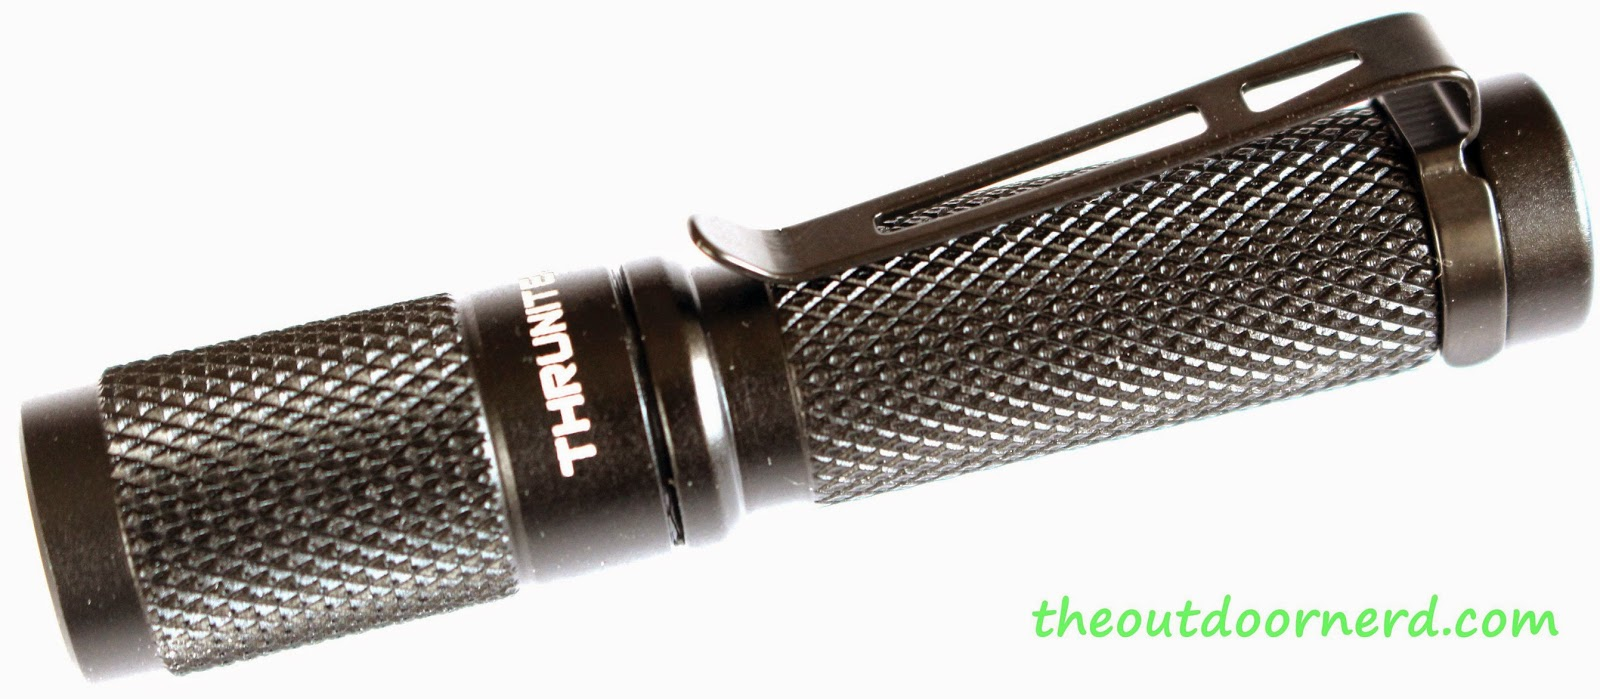 Thrunite Ti3 1xAAA EDC Flashlight: Product Link